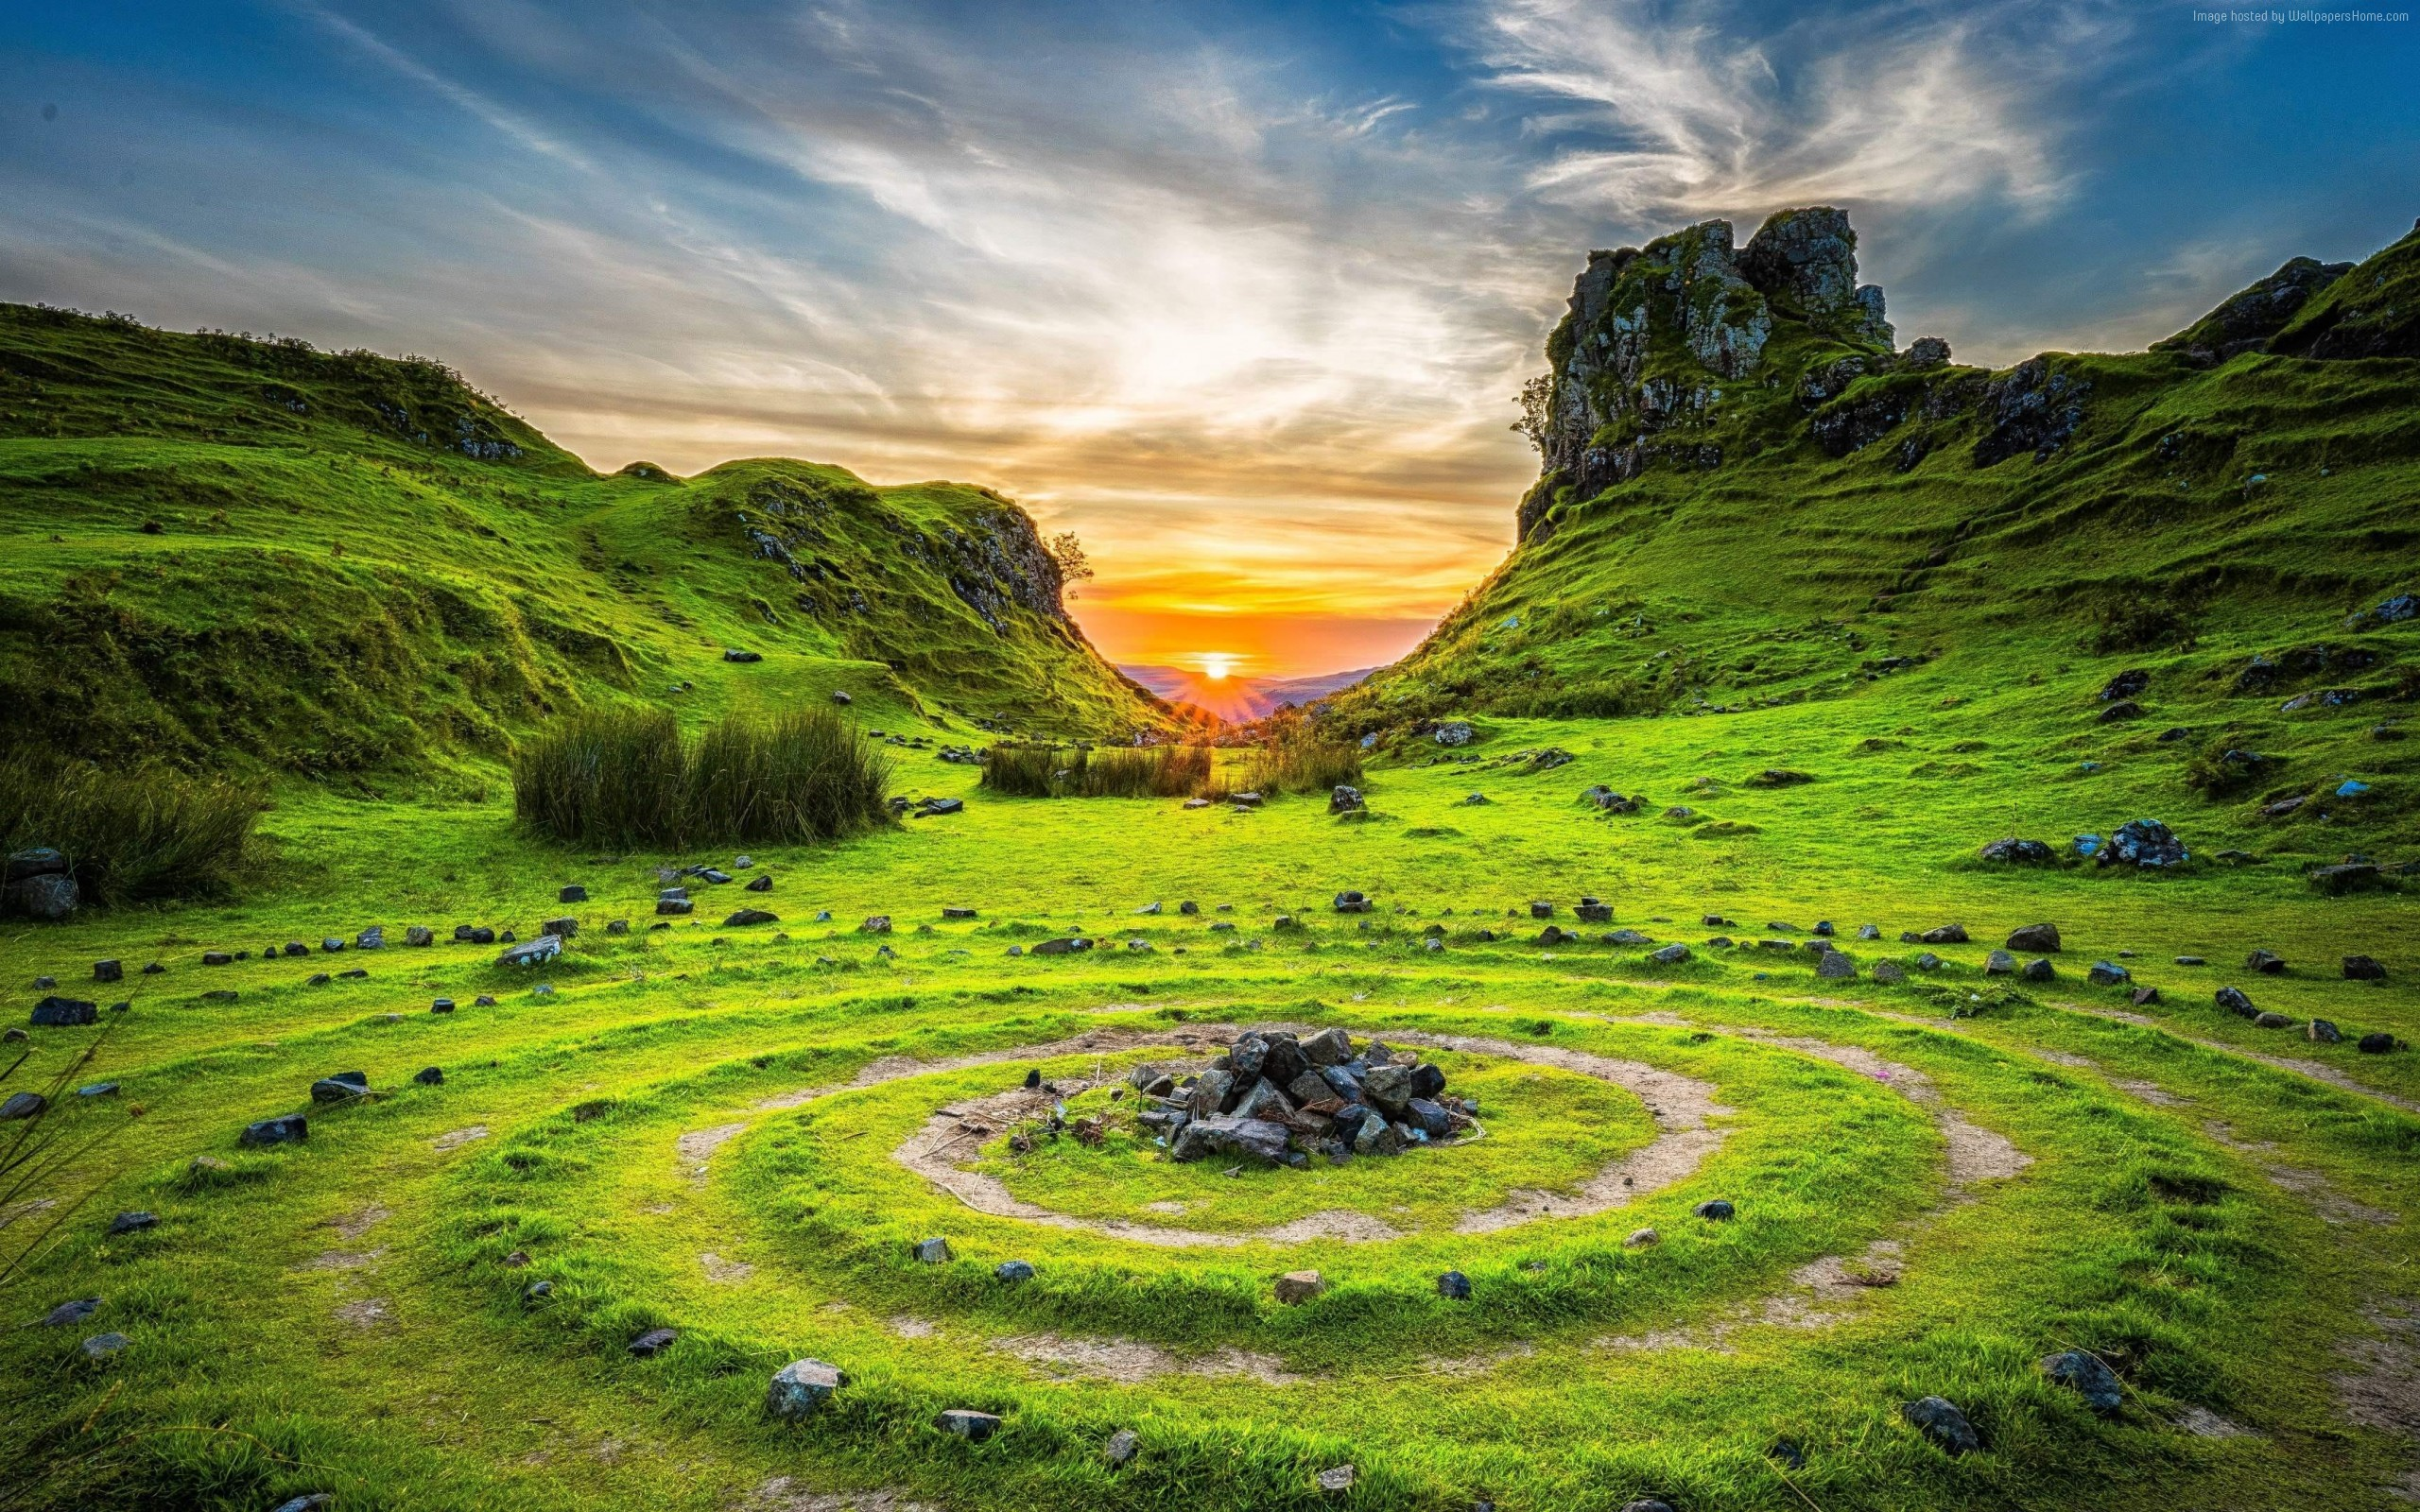 Wallpaper Of Fairy Glen Isle Of Skye Scotland Nature